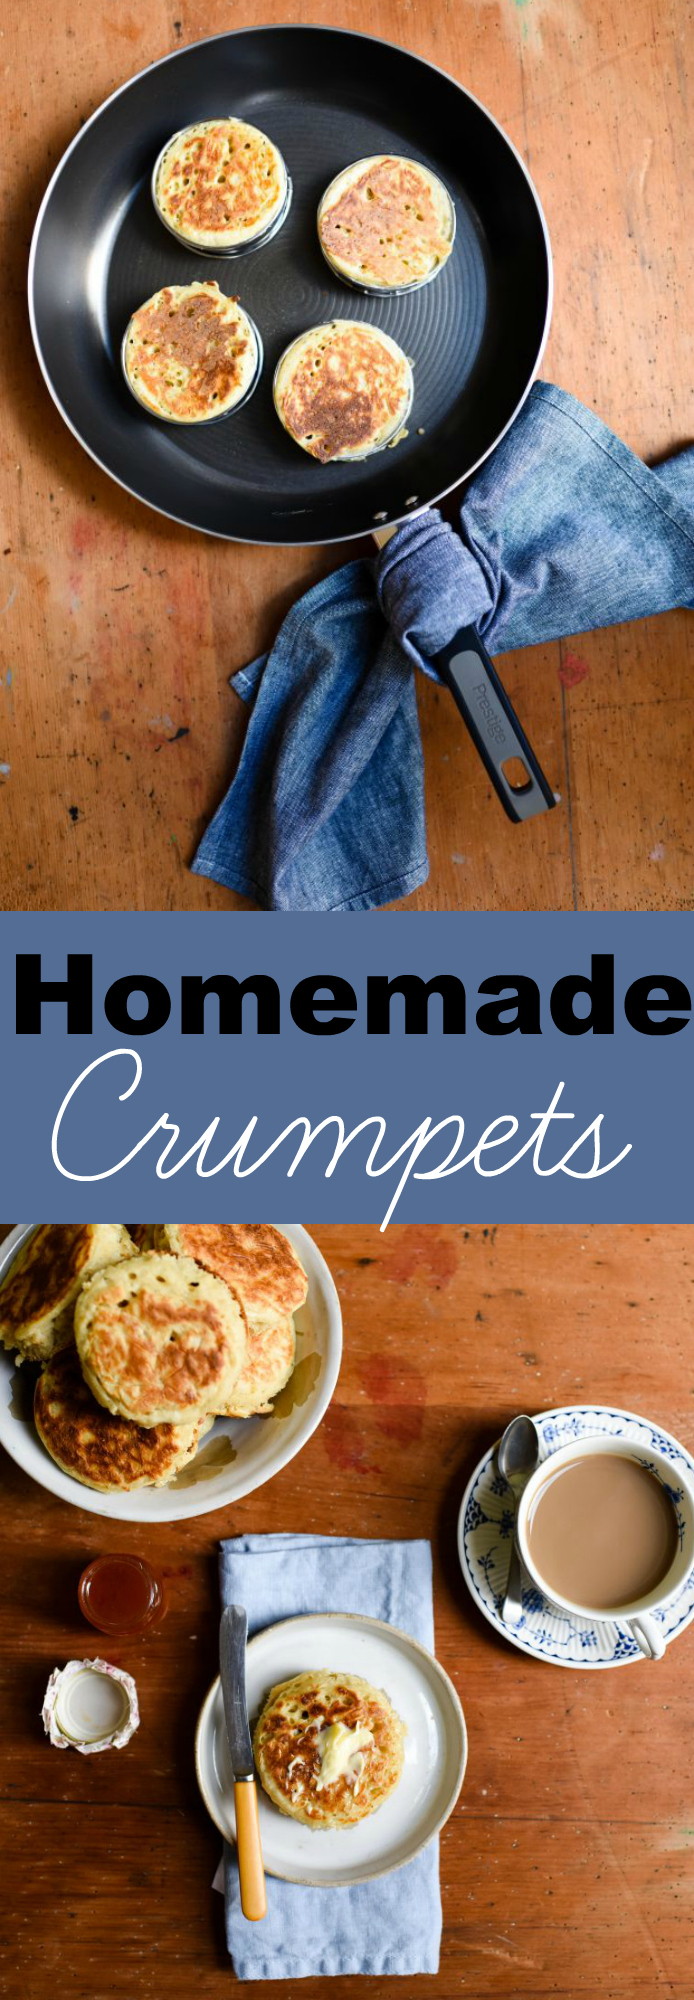 Crumpets | Patisserie Makes Perfect